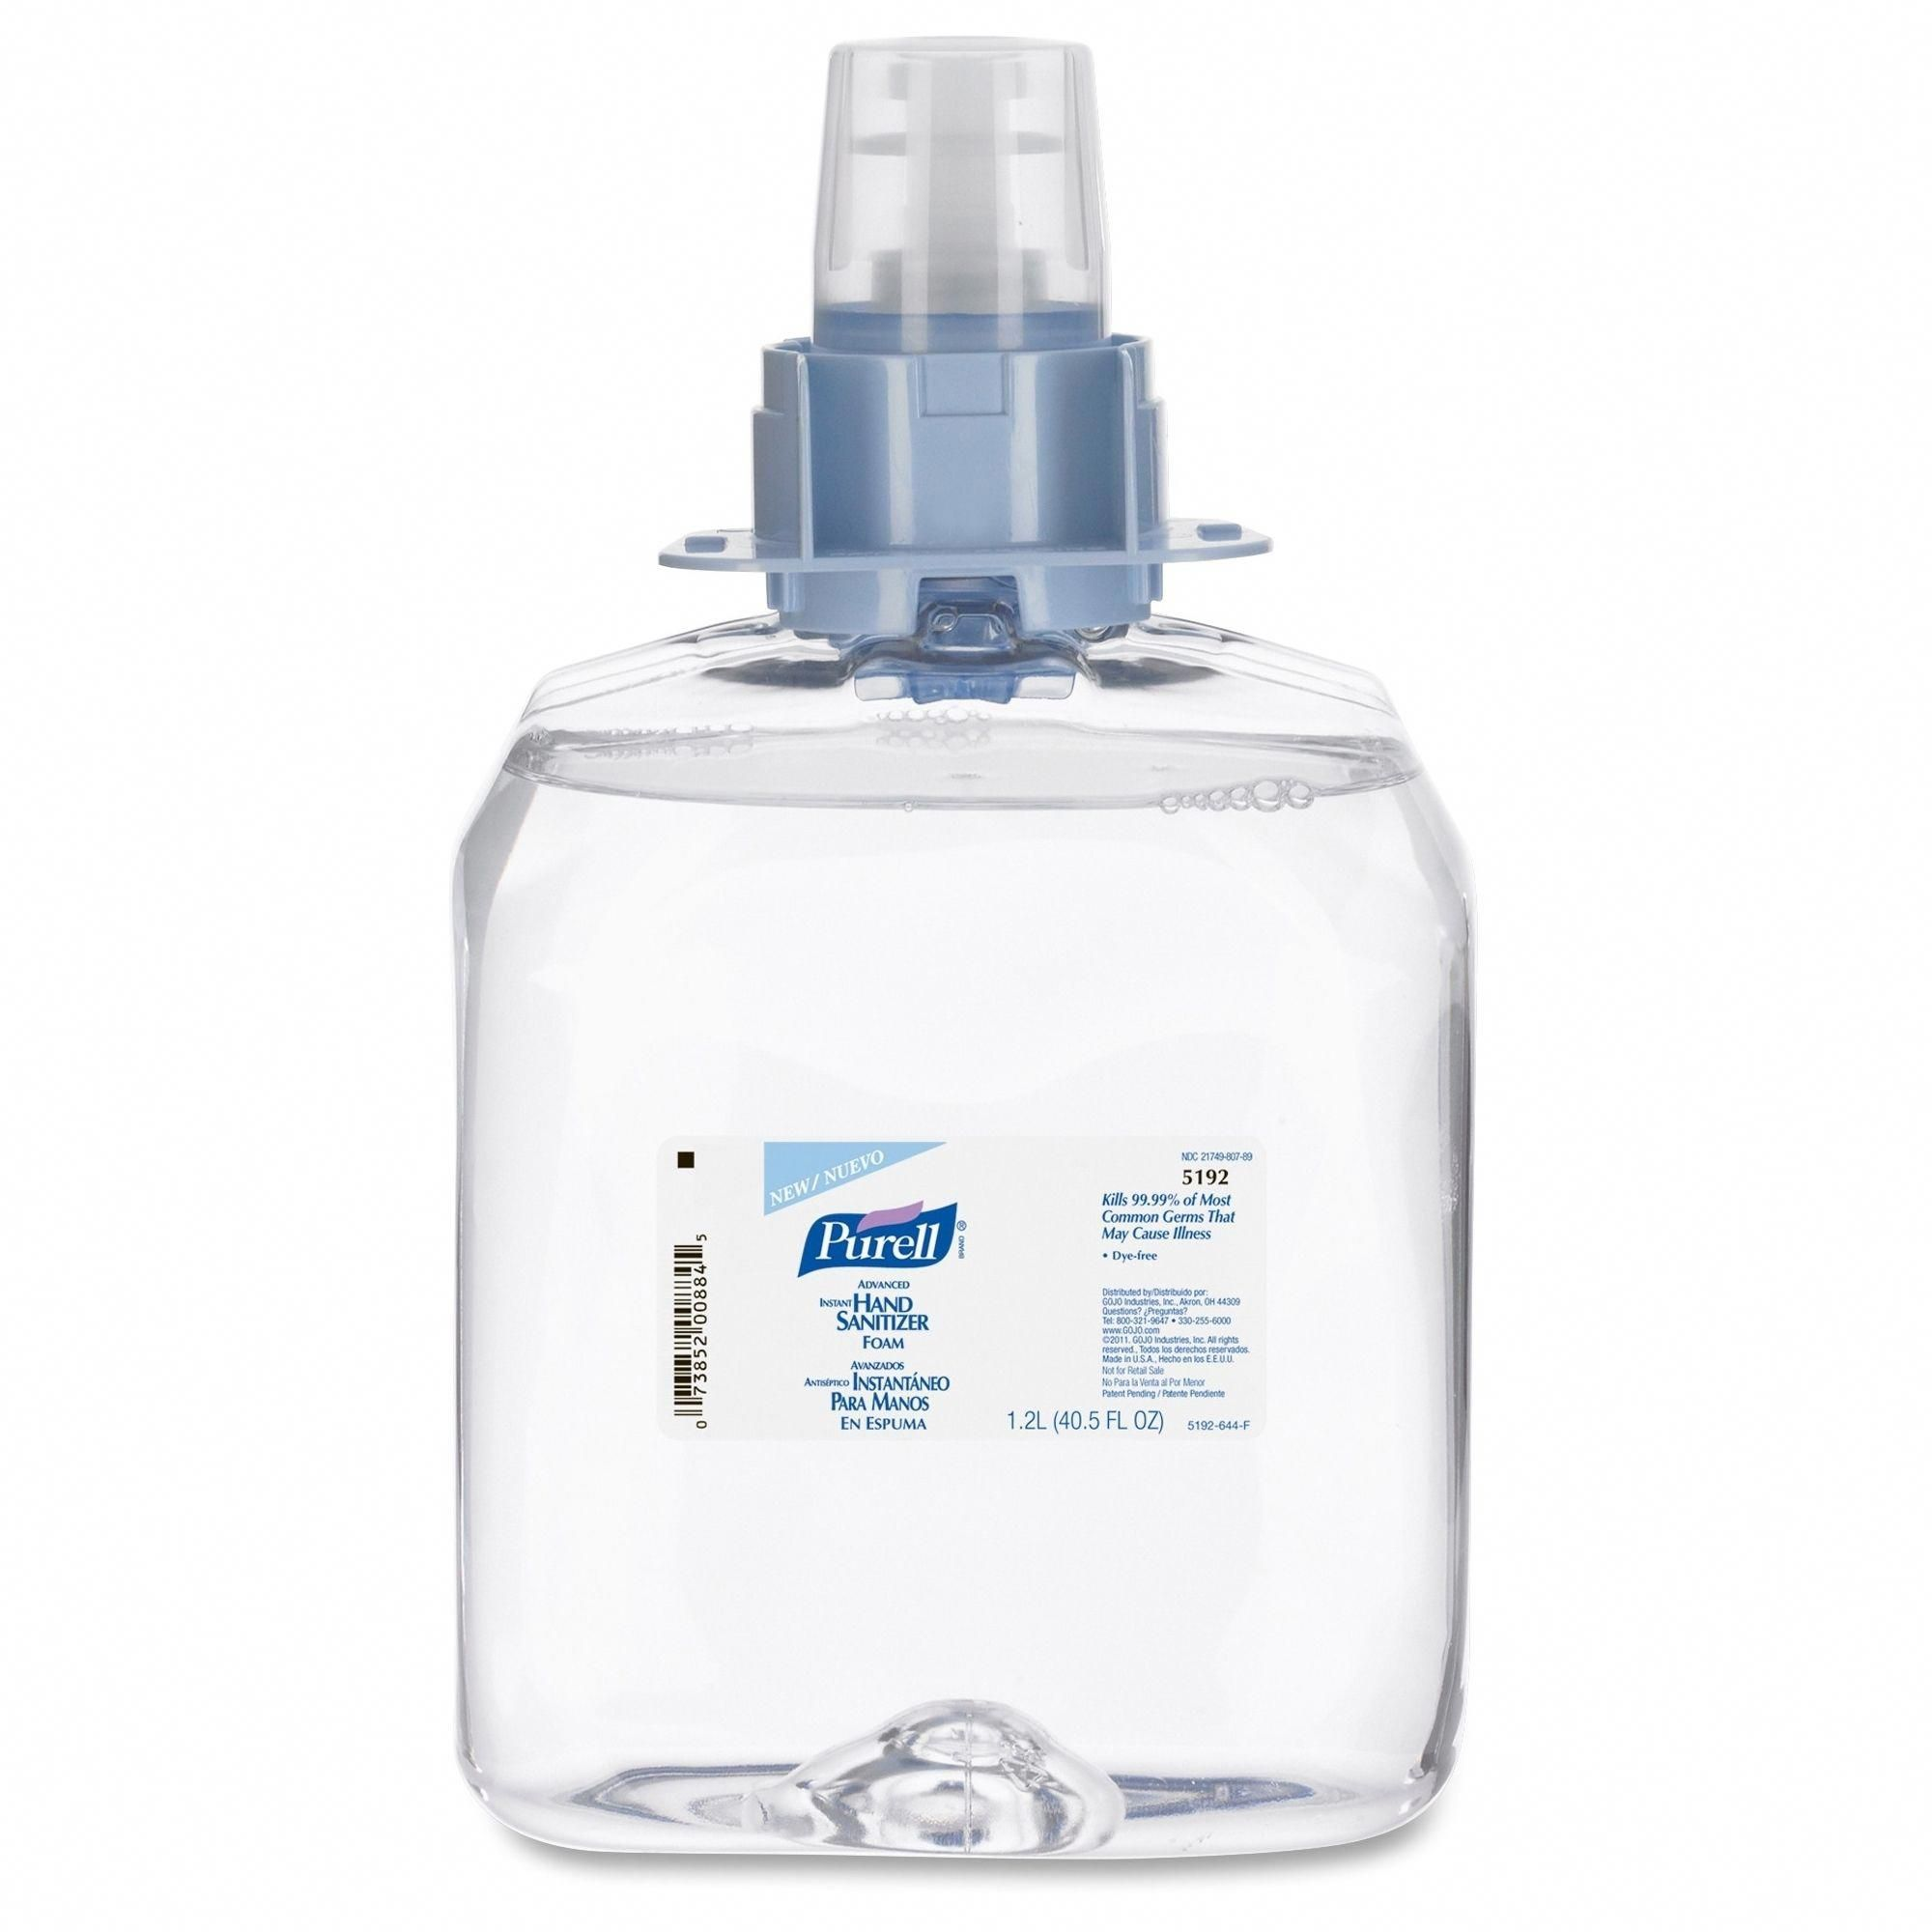 Purell Instant Hand Sanitizer Foam Master Nailscare Hands